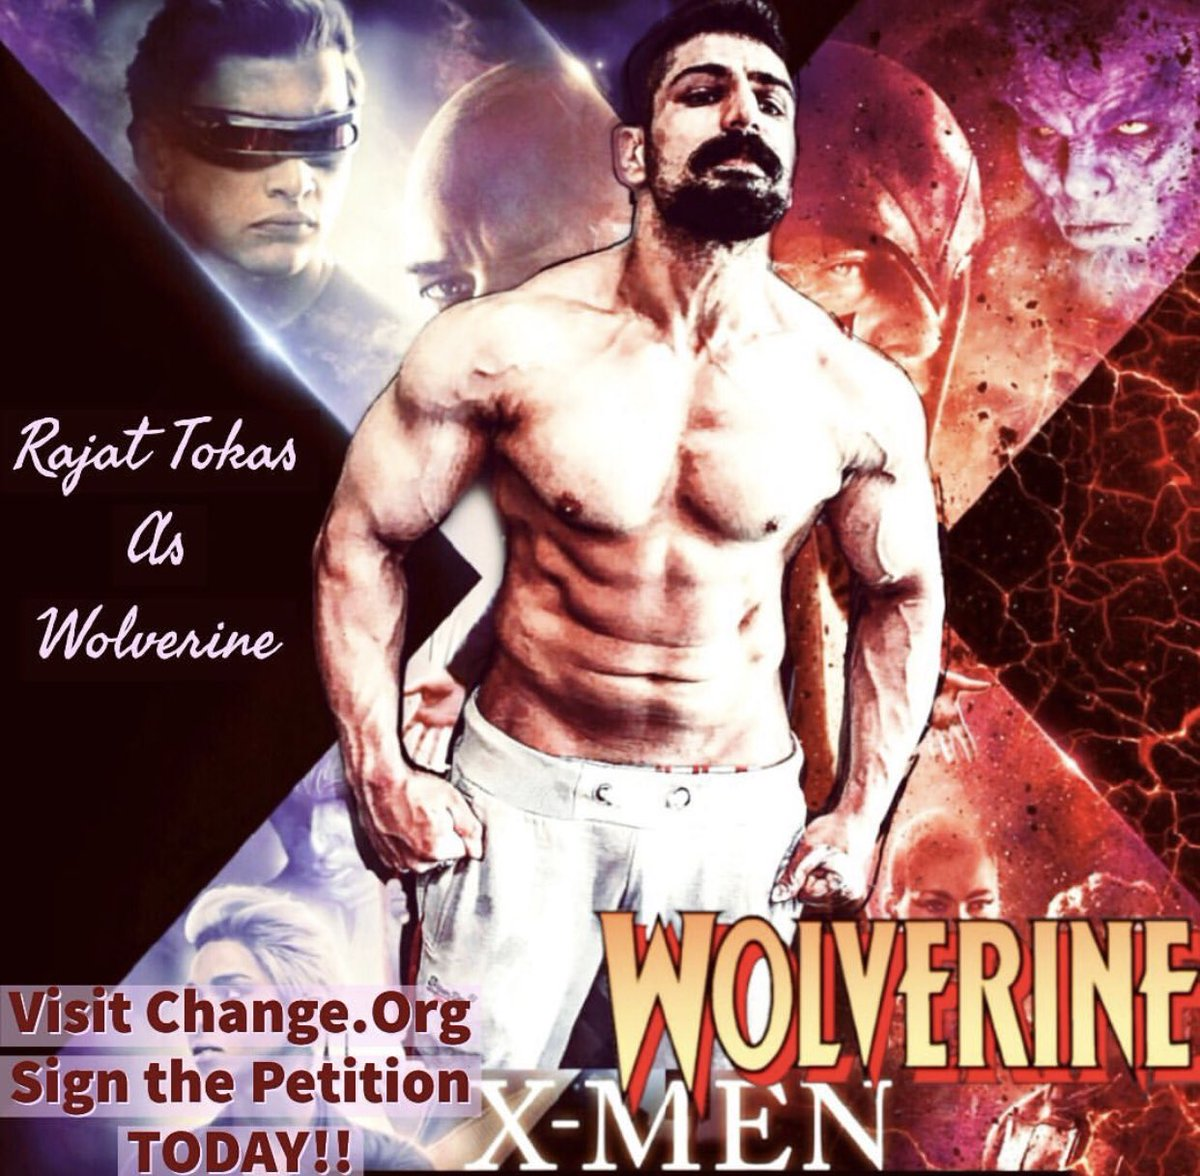 #rajattokasforwolverine #RajatTokas @RajjatTokas we would love to see Rajat Tokas as Wolverine role, please select him @MarvelStudios @Kevfeigepic.twitter.com/GZkqaplkEn